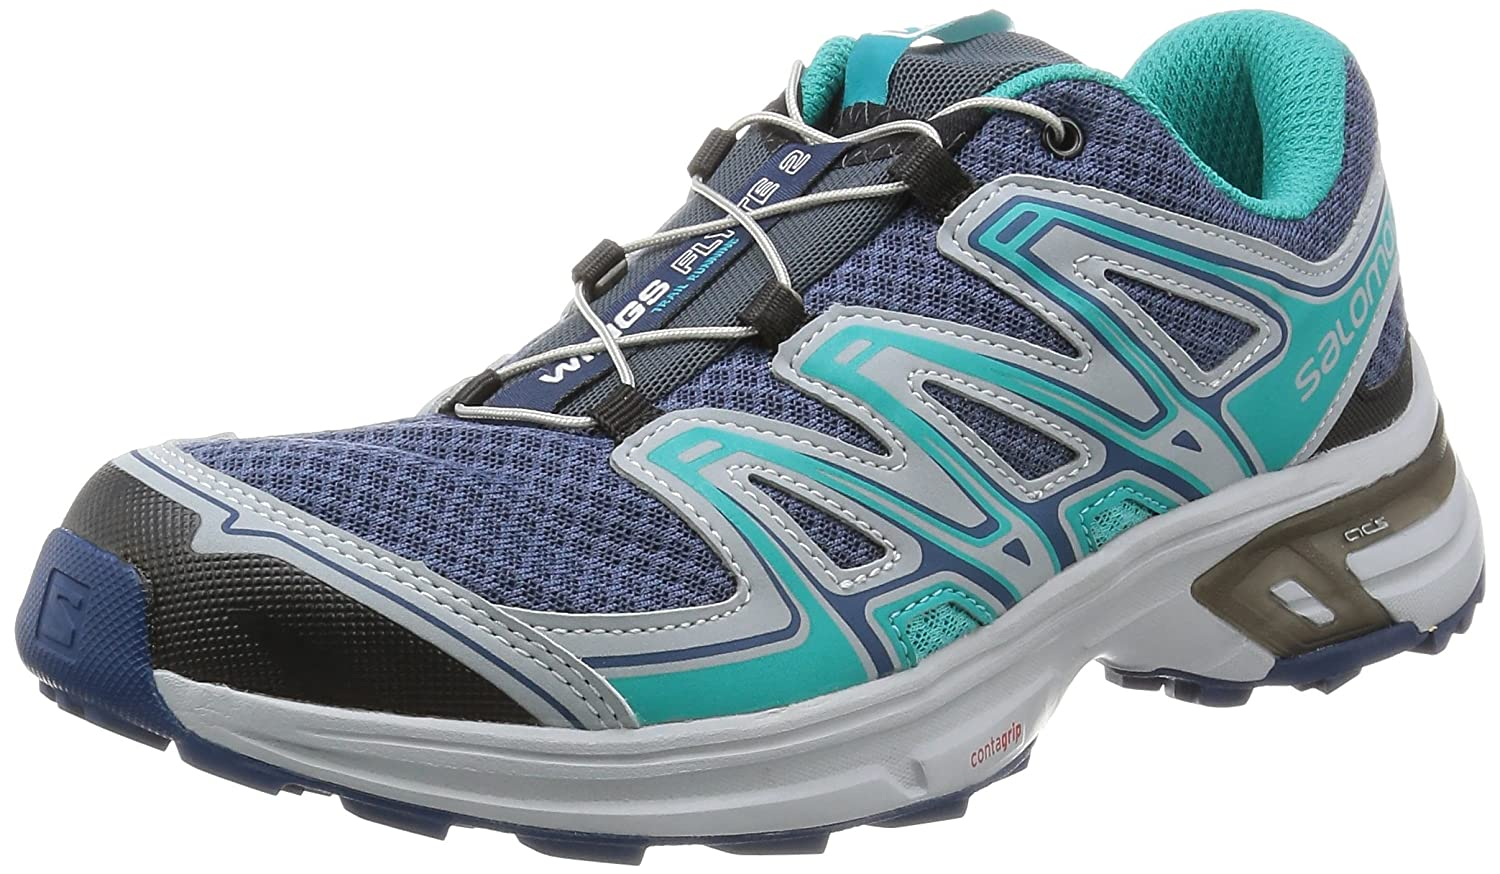 Salomon Women's Wings Flyte 2 W Trail Running Shoe B00ZLN6DXY 8 B(M) US|Slateblue/Light Onix/Teal Blue F